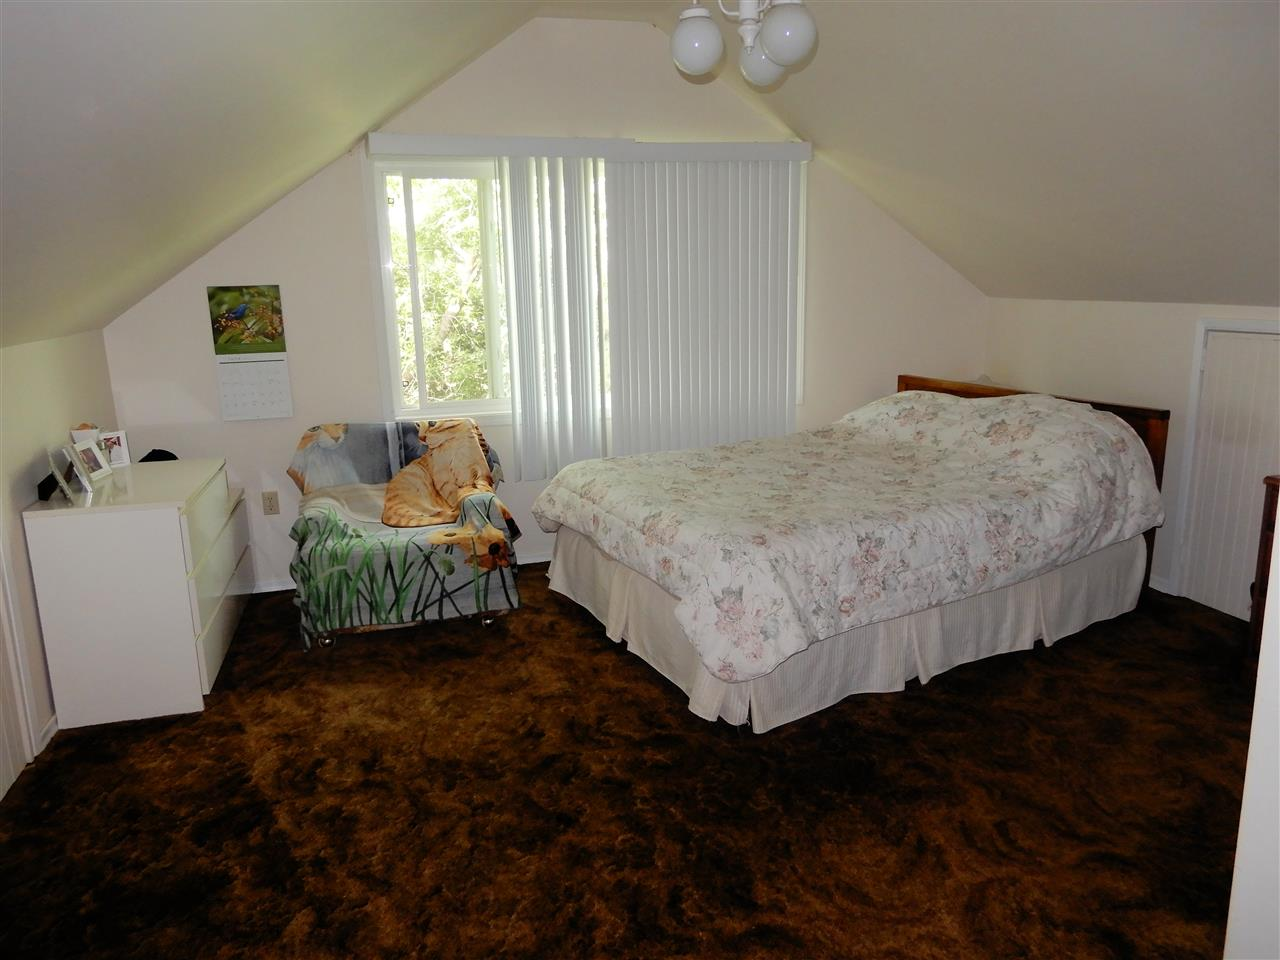 Photo 20: 55109 Range Road 260: Rural Sturgeon County House for sale : MLS® # E4068603